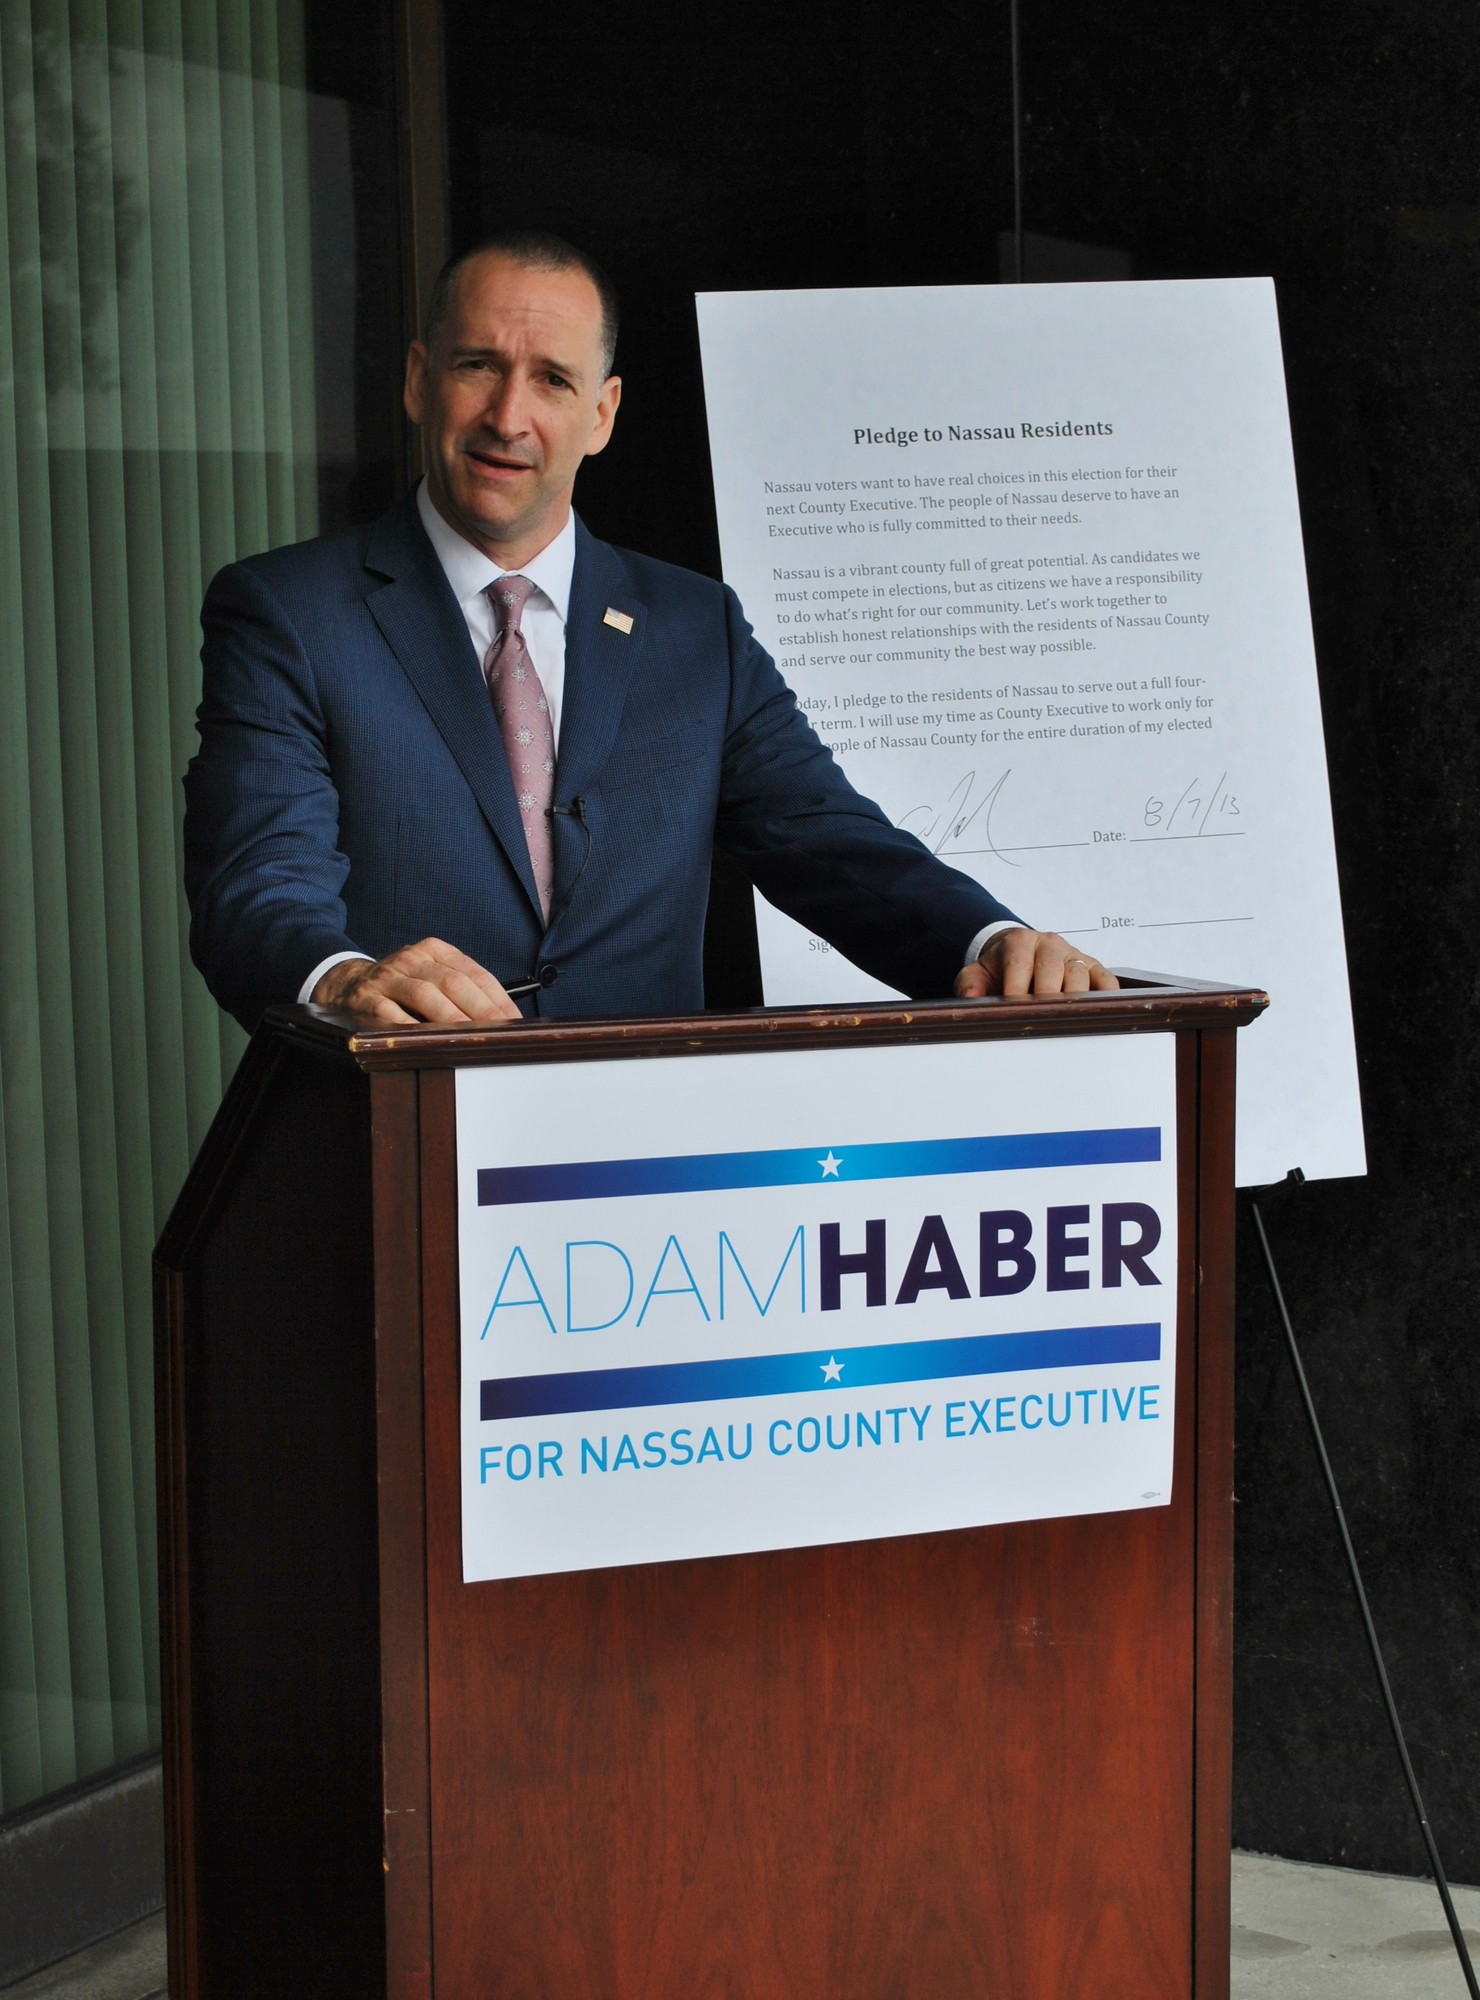 Adam Haber, speaking on the steps of the Nassau County Supreme Court building on Aug. 7, signed a pledge vowing to serve a full four-year term if elected as county executive. His is seeking the Democratic nod to run for the position.